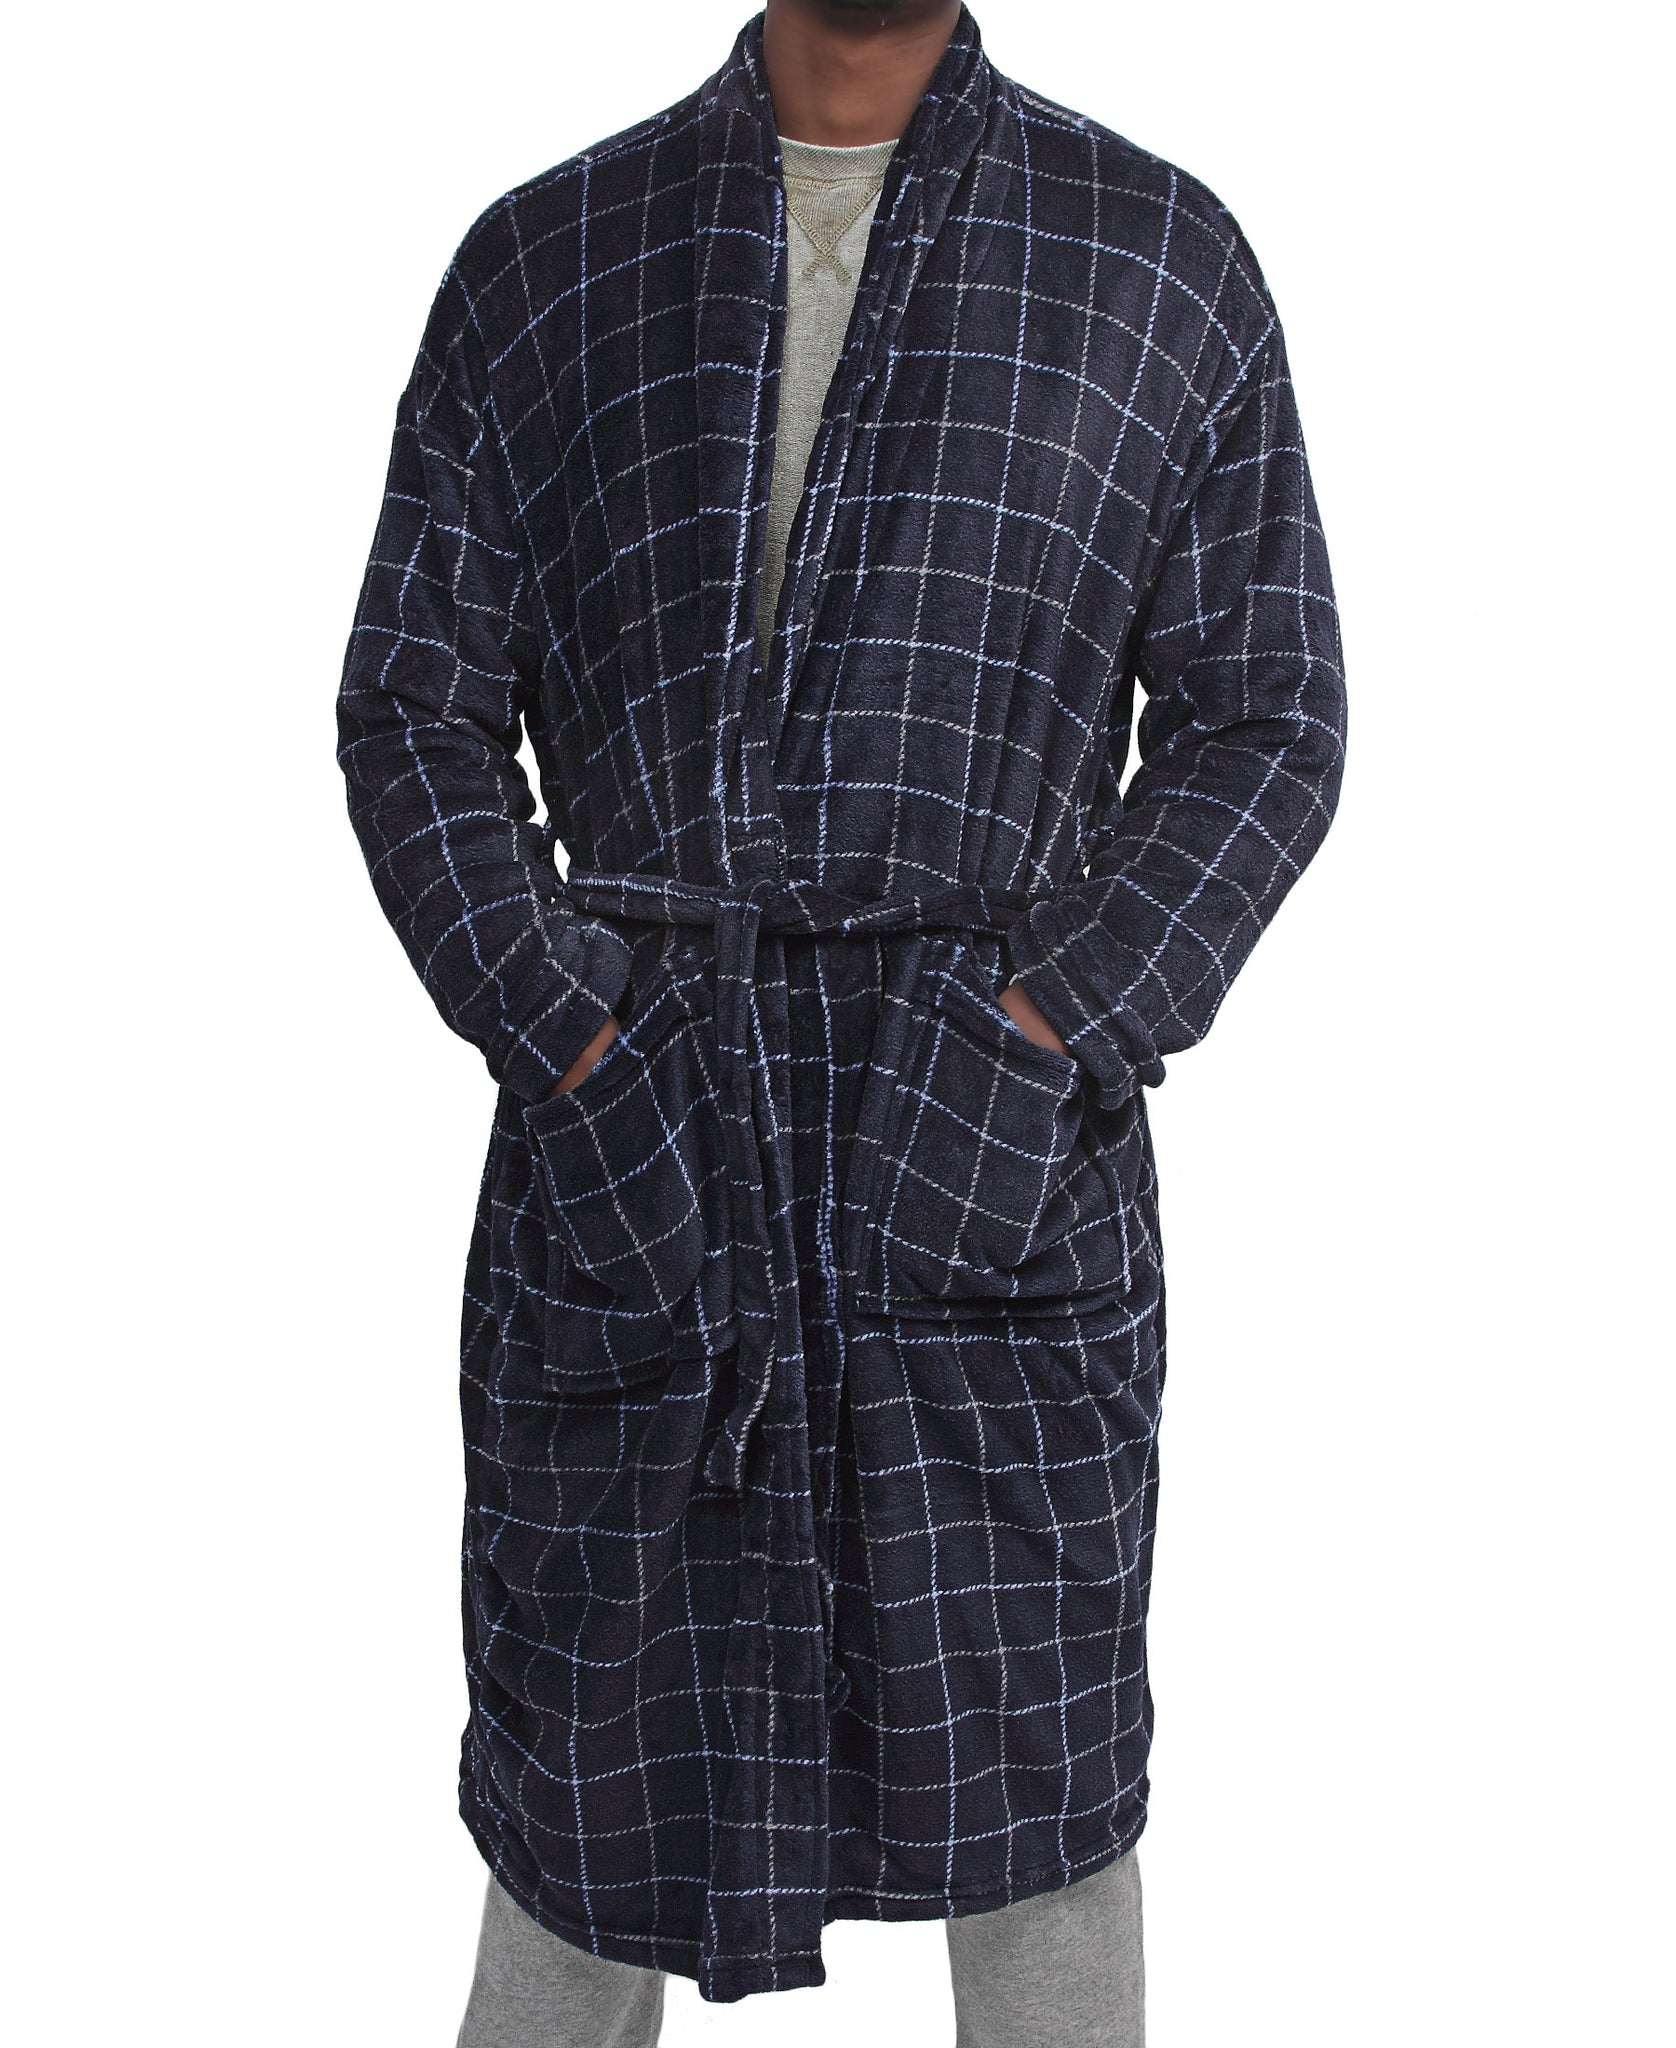 Men's Bathrobe - Navy